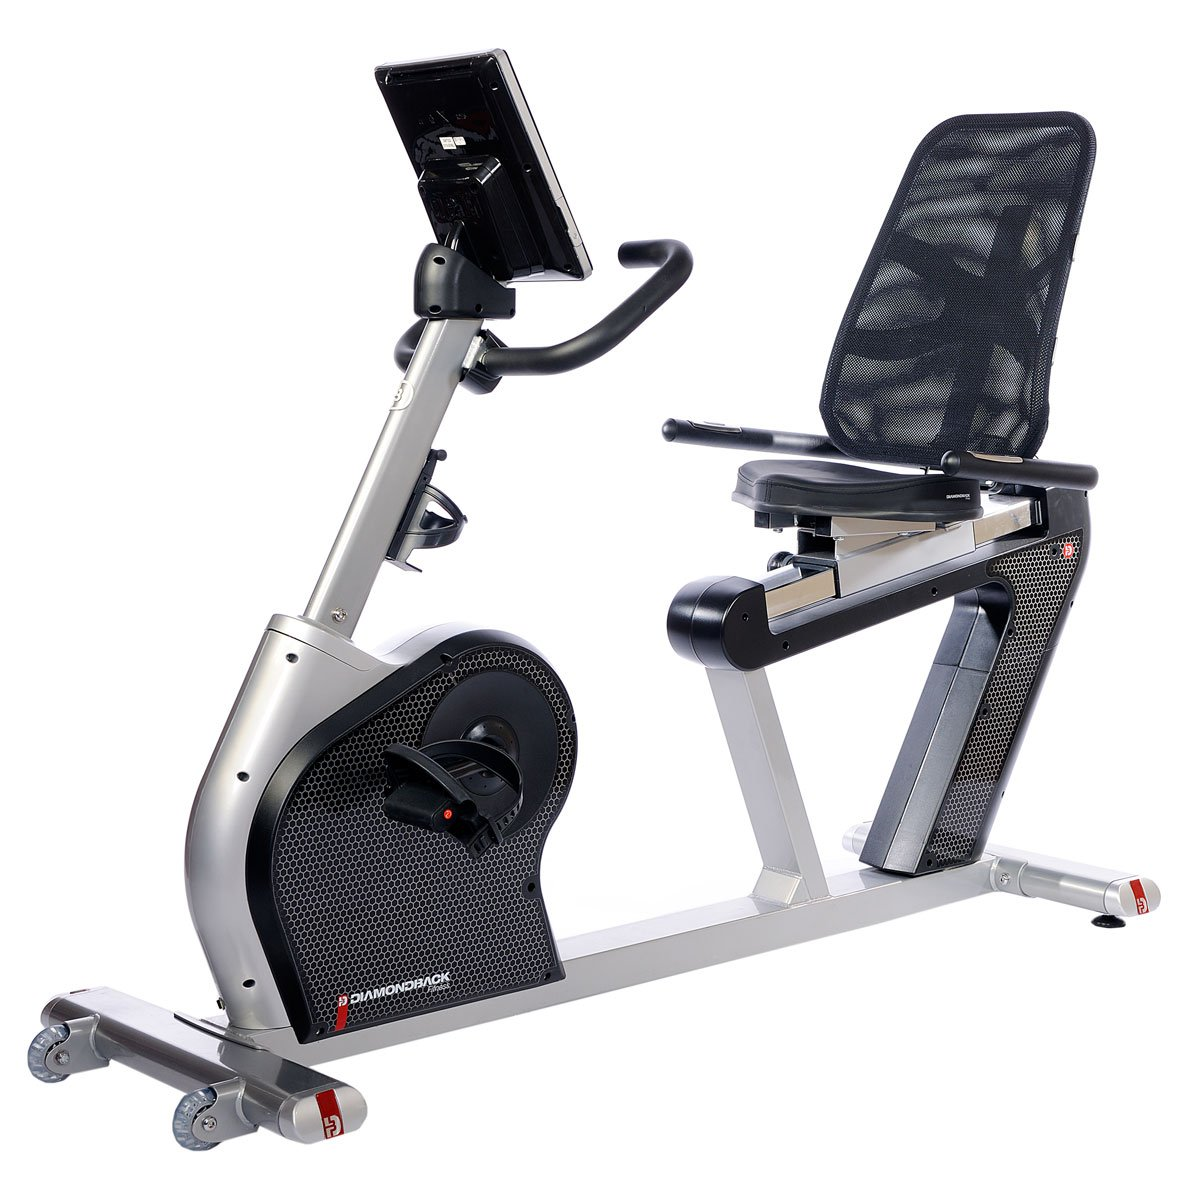 Diamondback Recumbent Bikes Recumbent Bike Sports amp